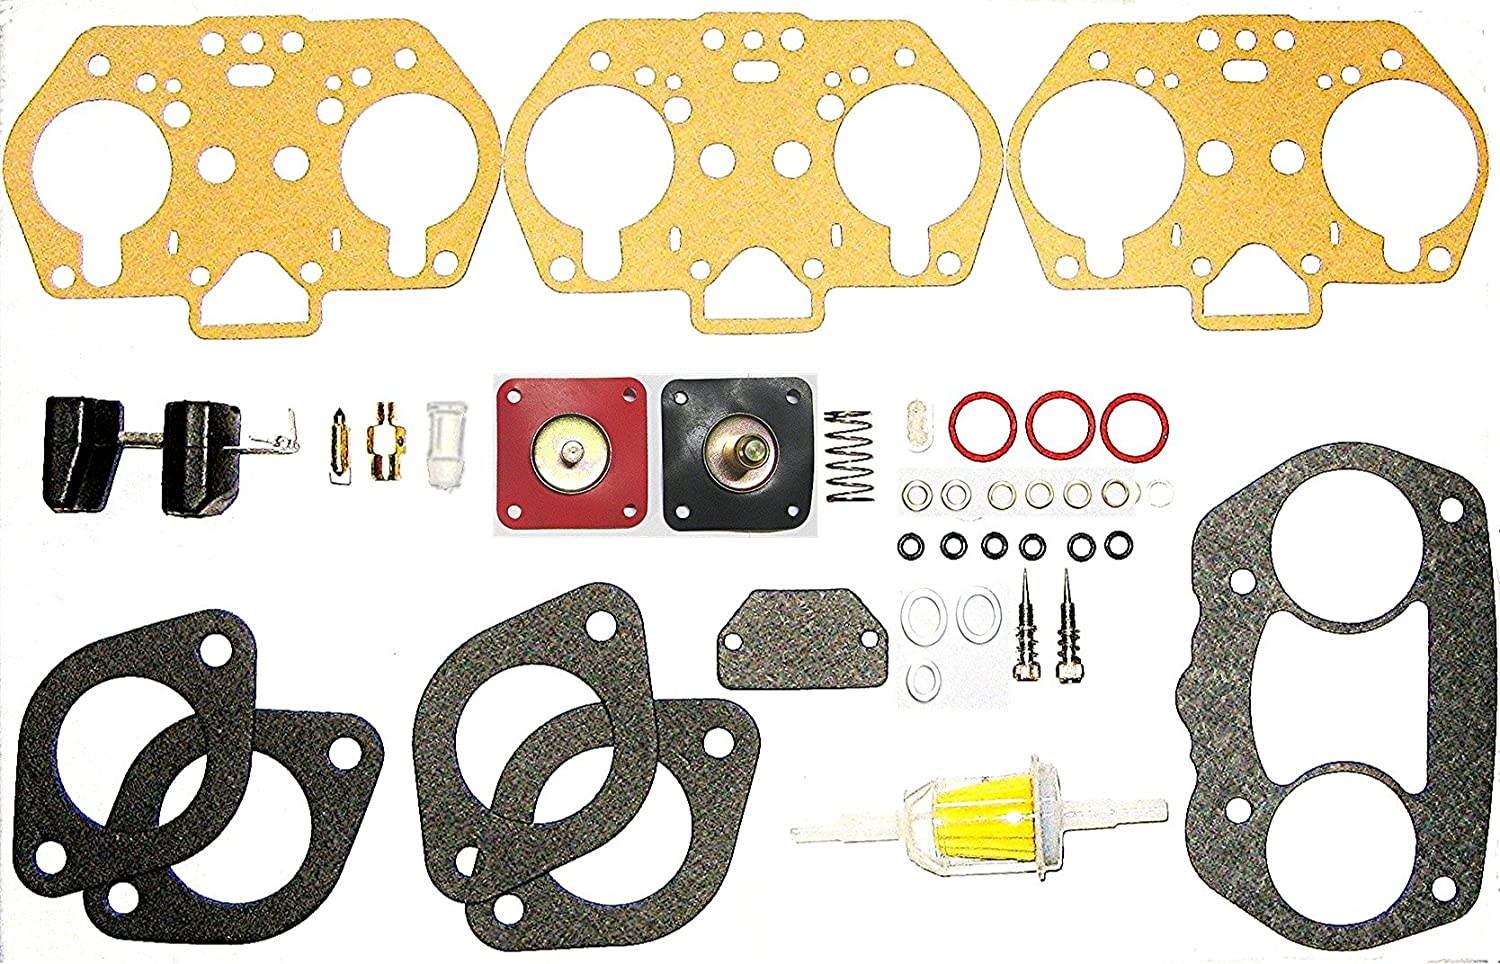 WEBER IDF MASTER REBUILD KIT WITH FLOATS BY RADKE FOR 40, 44, & 48 IDF CARB, EACH